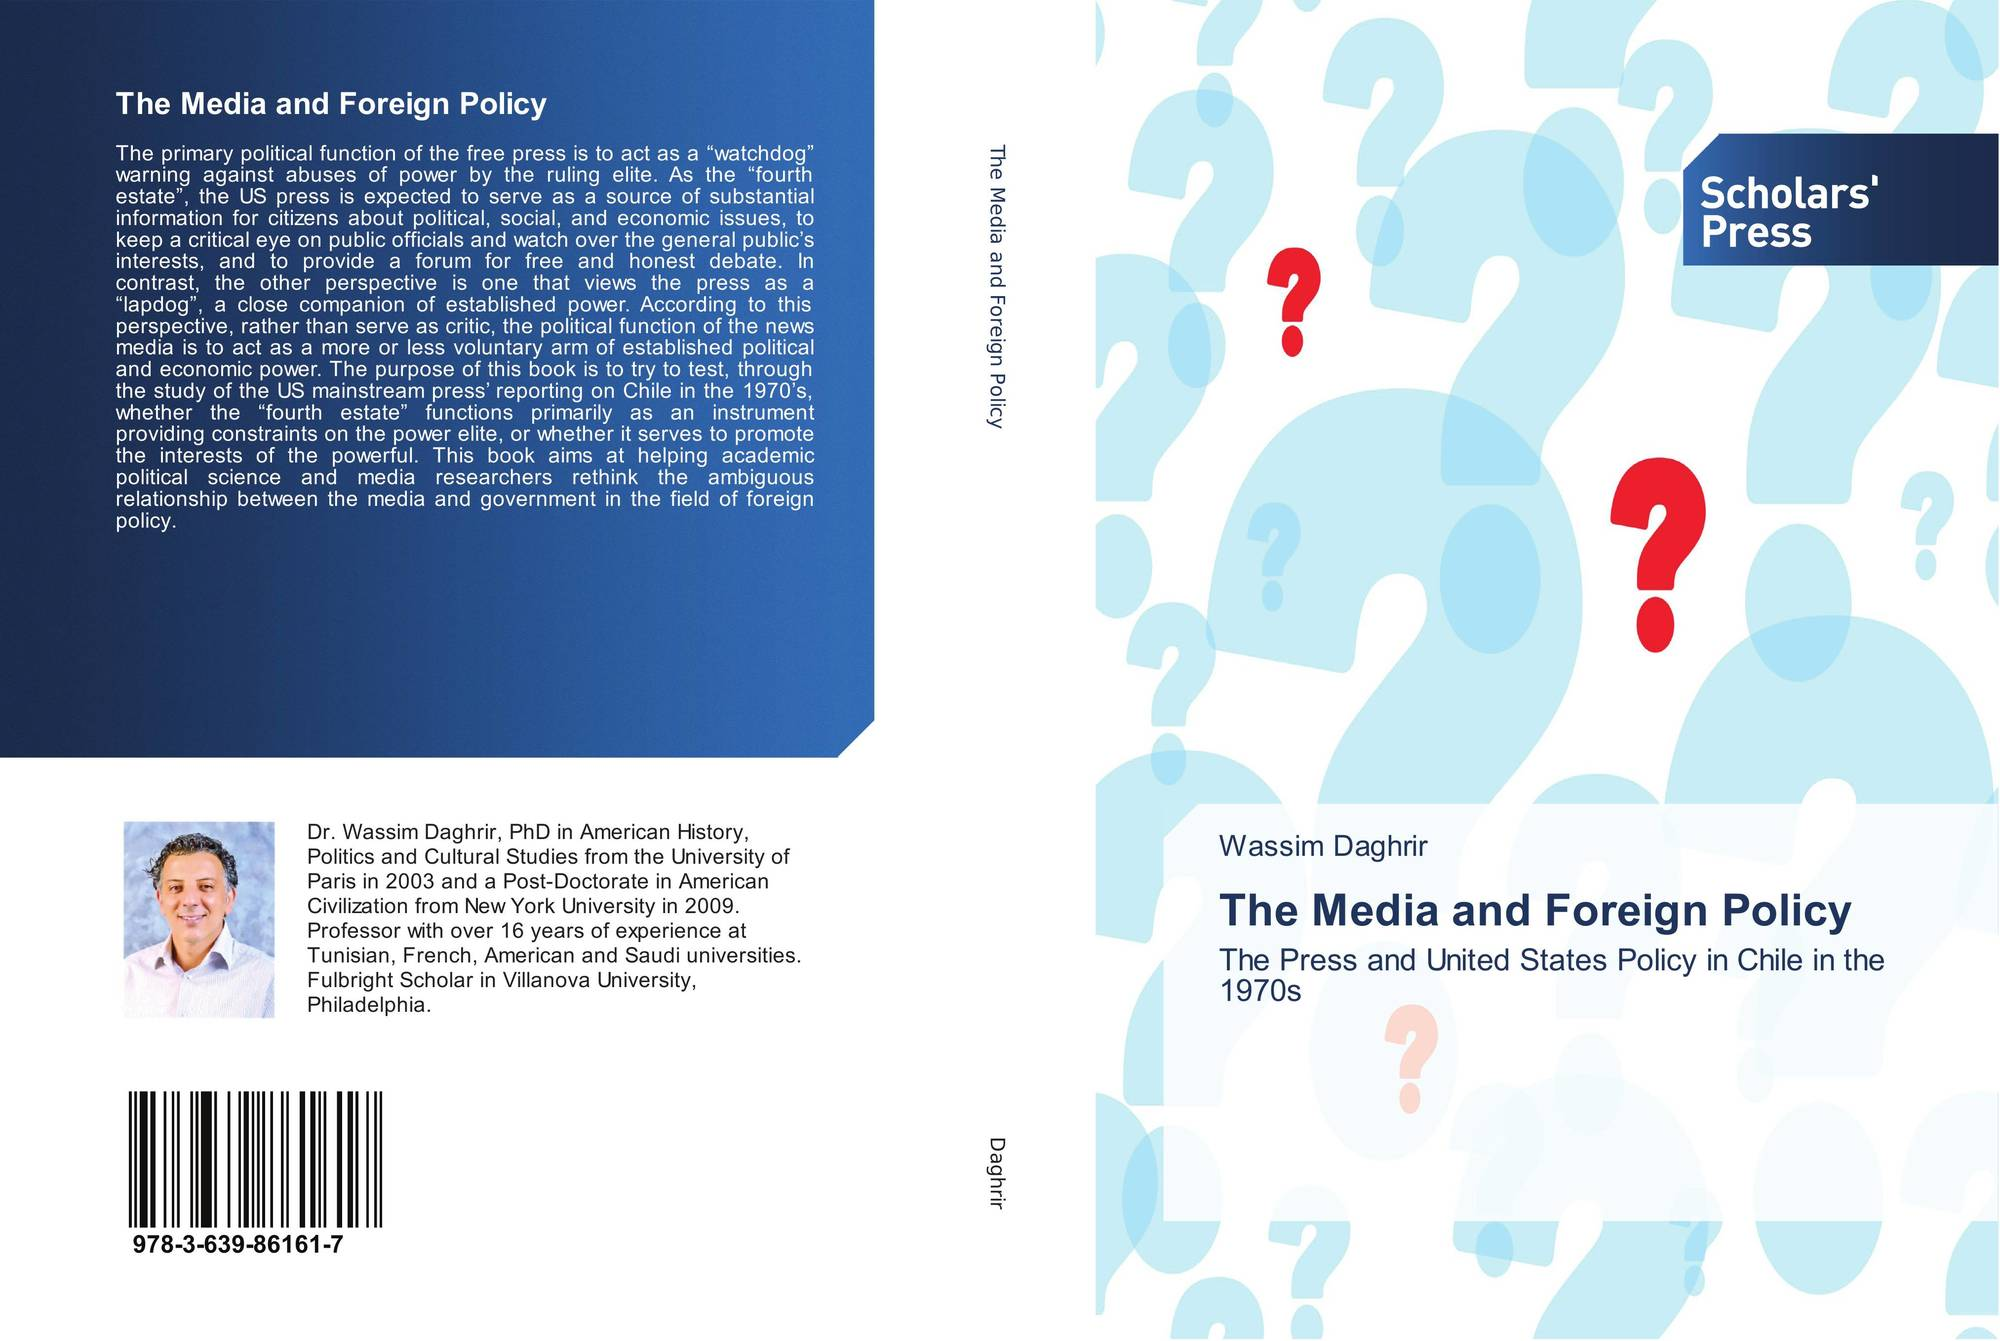 the relation between the media and foreign policy Using quantitative and qualitative content analysis and qualitative interviews with journalists, the thesis examines the influence of nepal's foreign policy relation to china on nepalese news media.